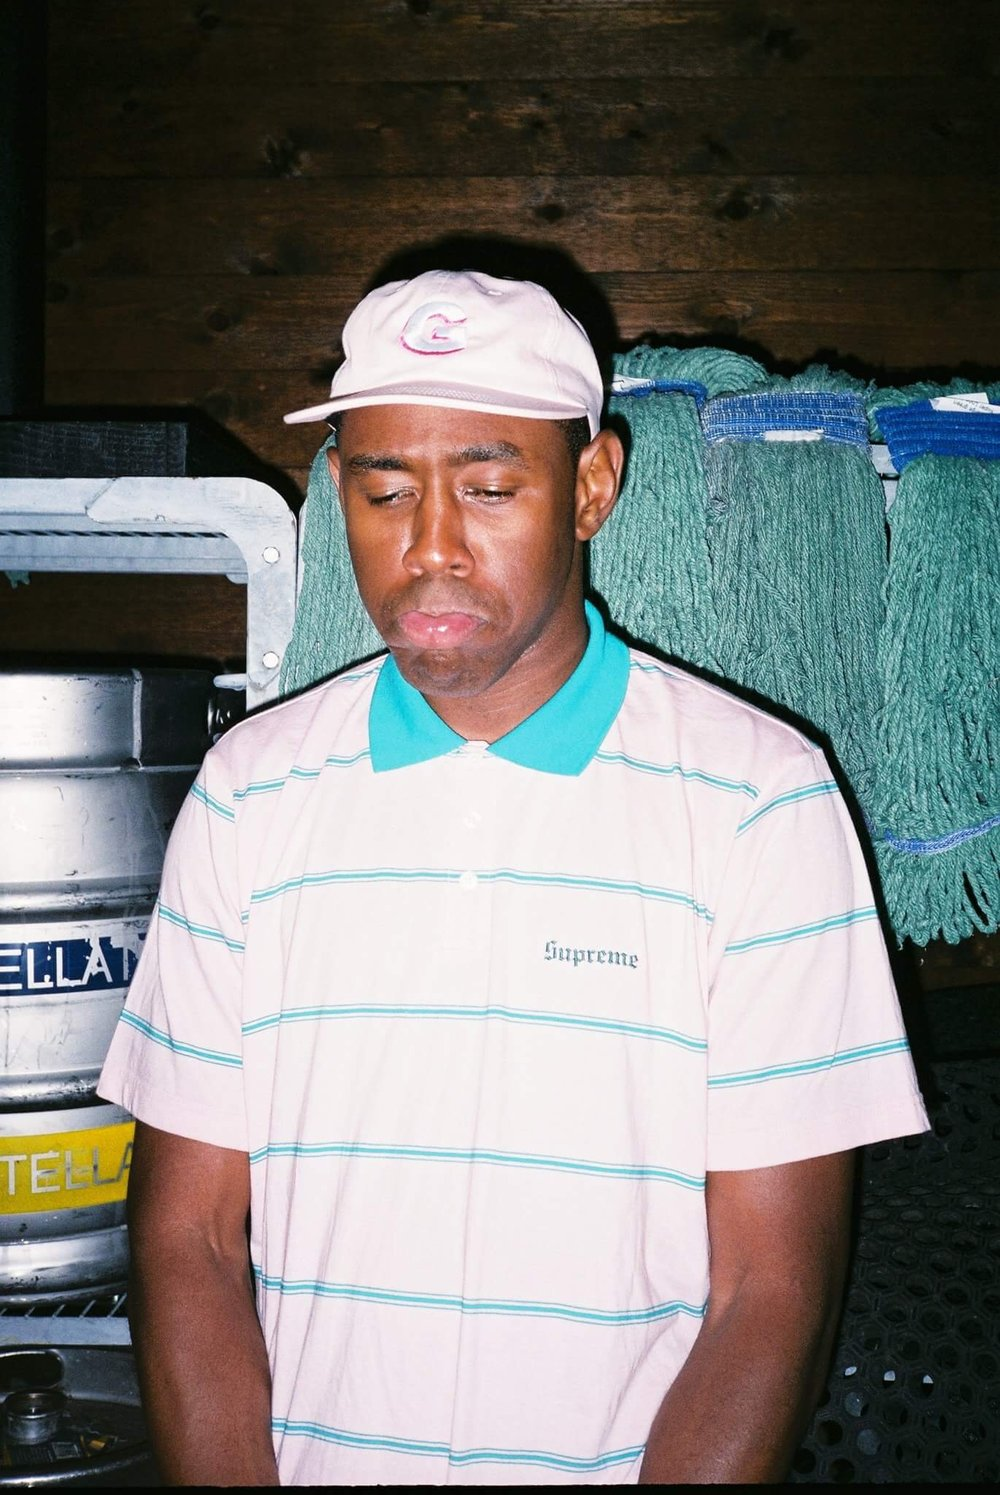 Tyler_The_Creator_F35mm_FILM_tealmagazine